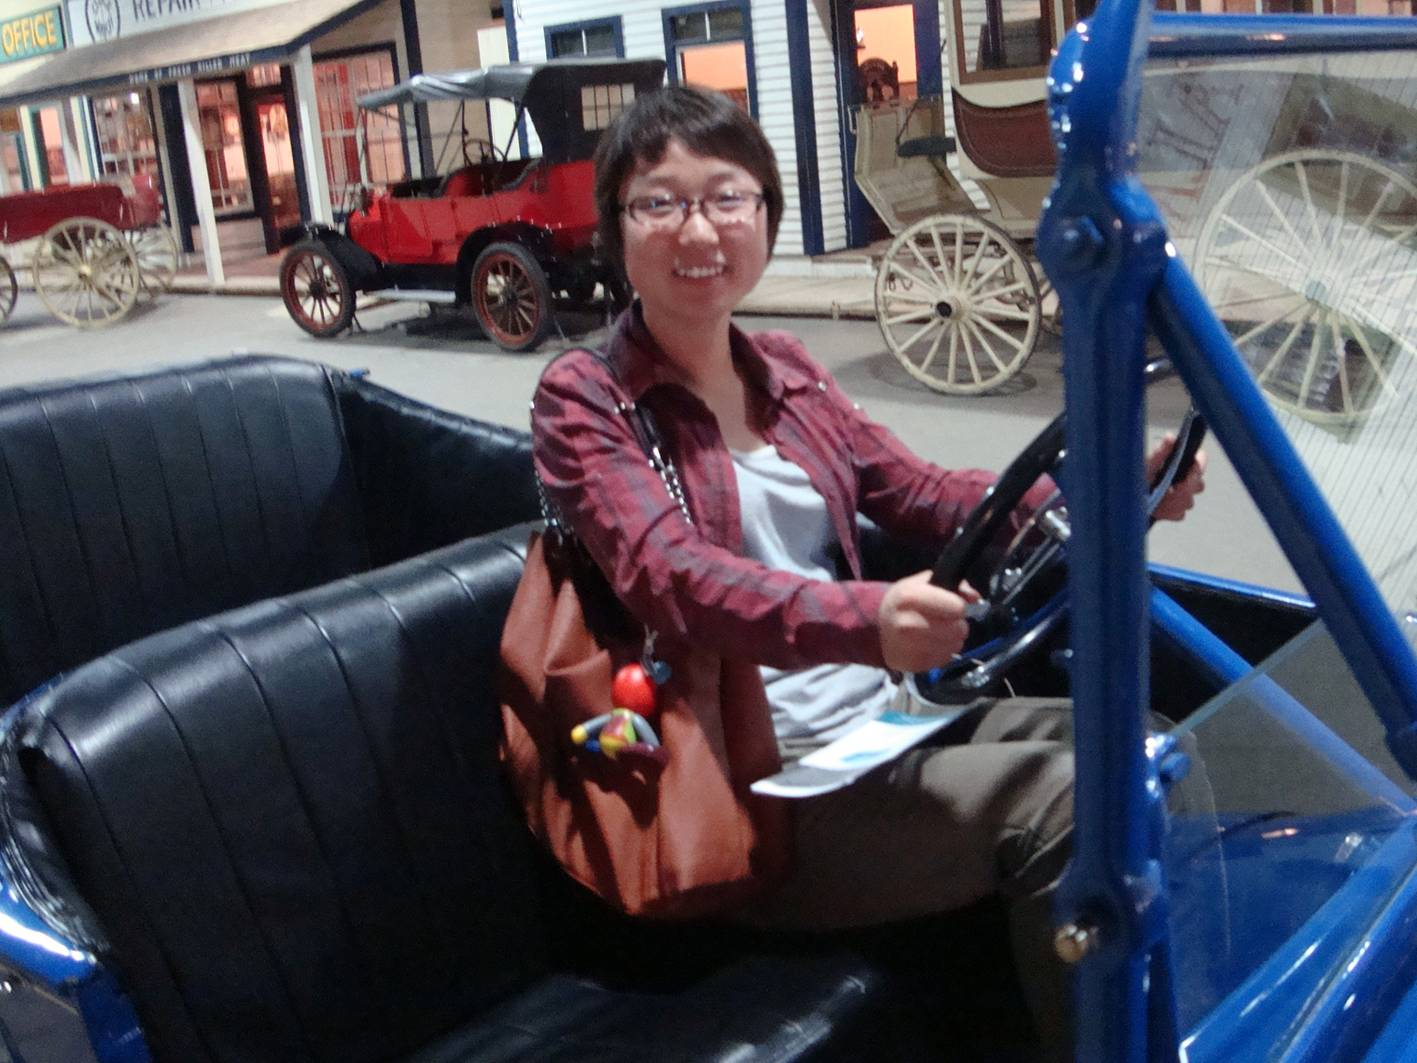 Picture:  Panda at the wheel of an antique car in Boomtown within the Western Development Museum in Saskatoon.